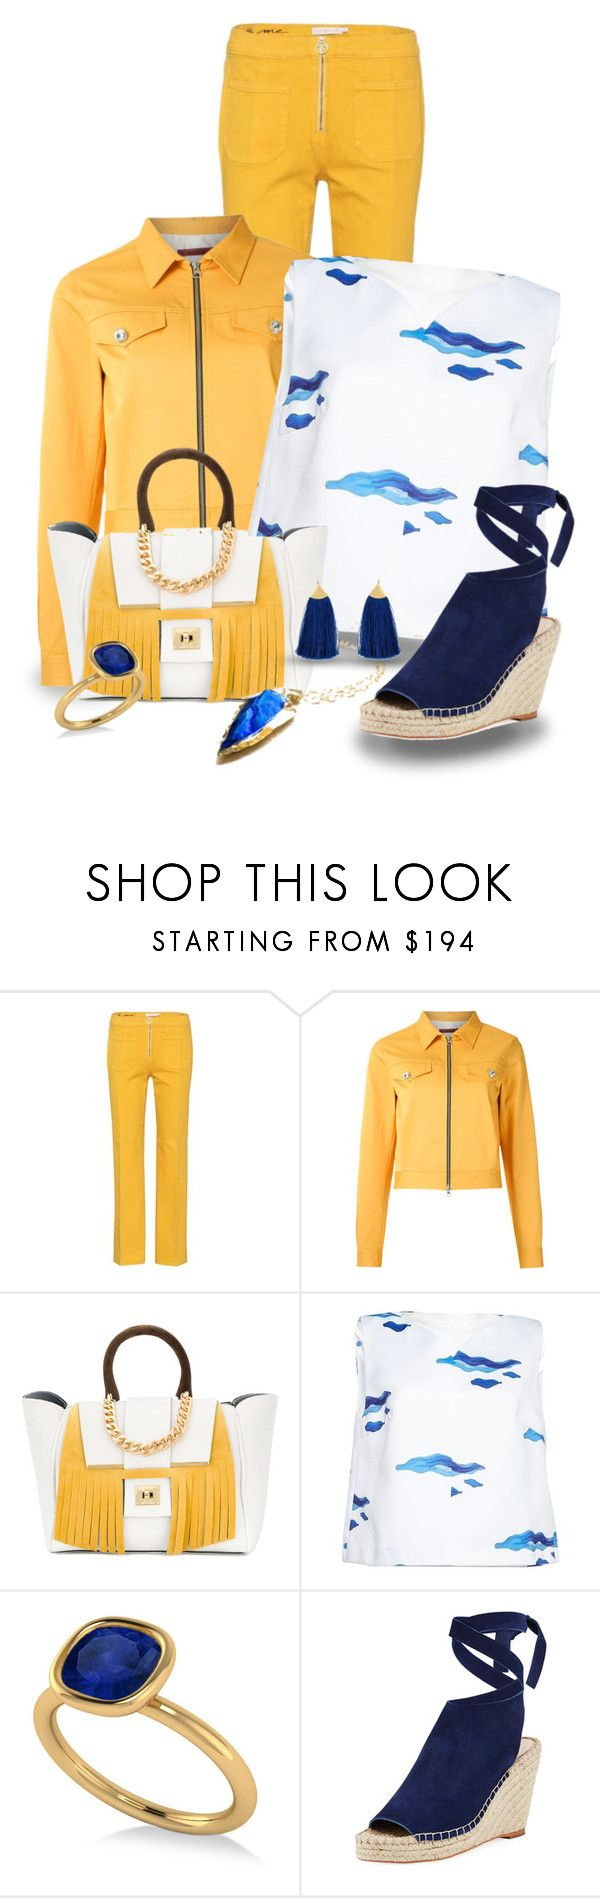 """""""Spring is in the Air (Looking to Summer #8)"""" by funnfiber ❤ liked on Polyvore featuring Tory Burch, À La Garçonne, Alila, Osman, Allurez and Loeffler Randall"""